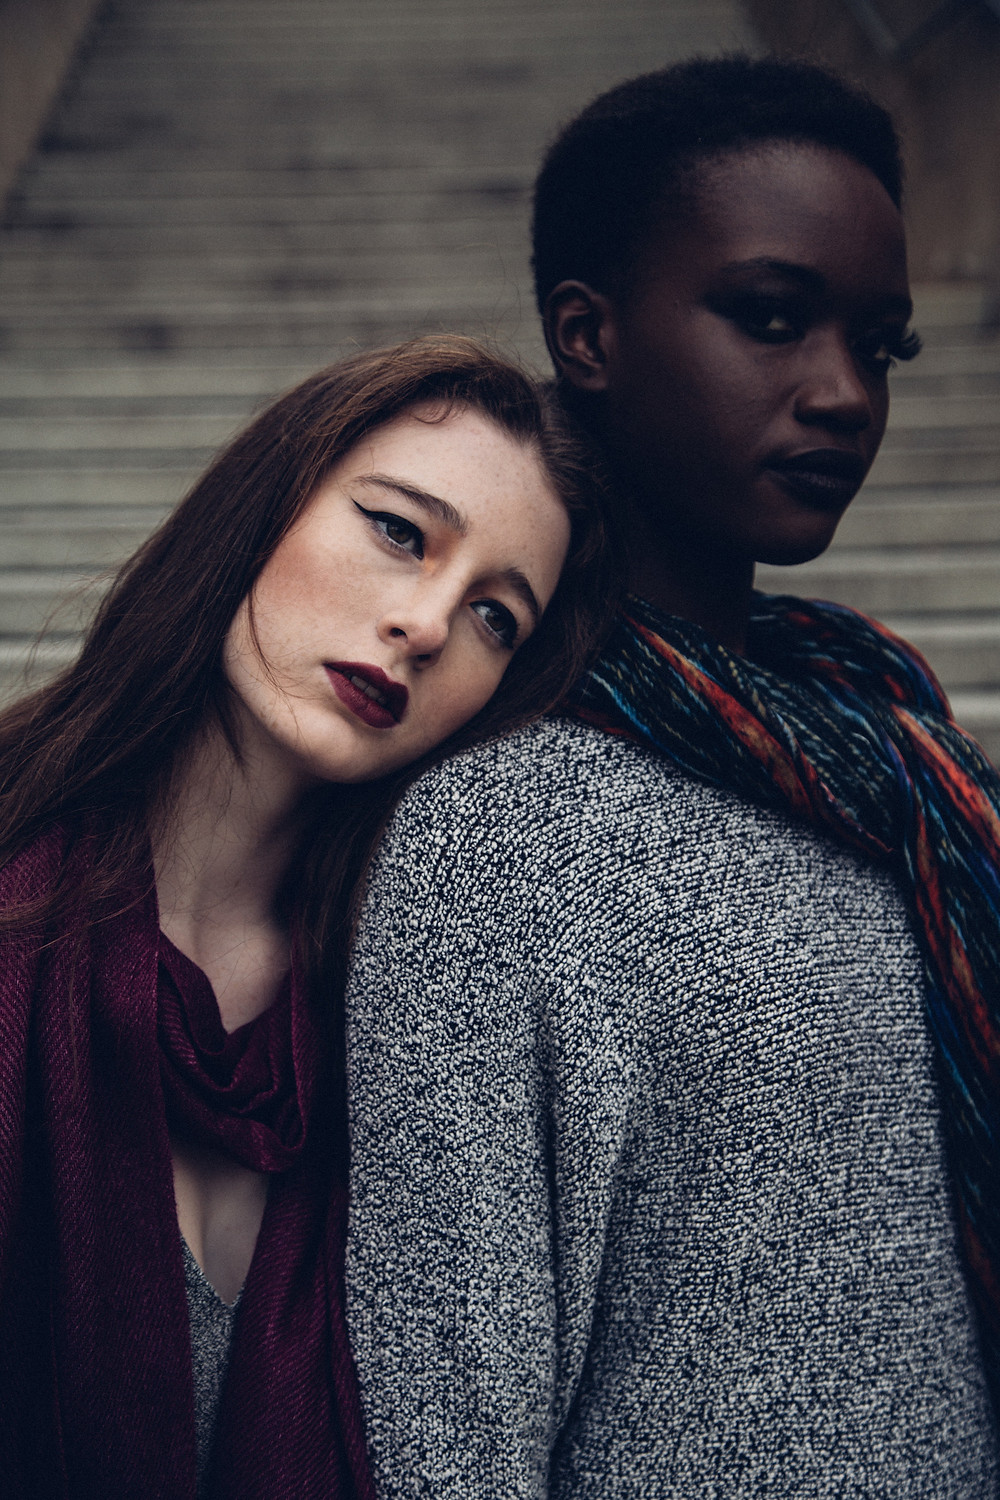 Photograph of two women leaning on one another against a grey background. To the right is a pale skinned woman with red hair and dark eyeliner and lipstick. She wears a black top and leans her head on the shoulder of the woman to the right of the image. The second figure has dark skin, thick eyelashes and short, dark hair. She wears a grey sweatshirt and a multicoloured scarf.  Photo by Shamim Nakhaei on Unsplash